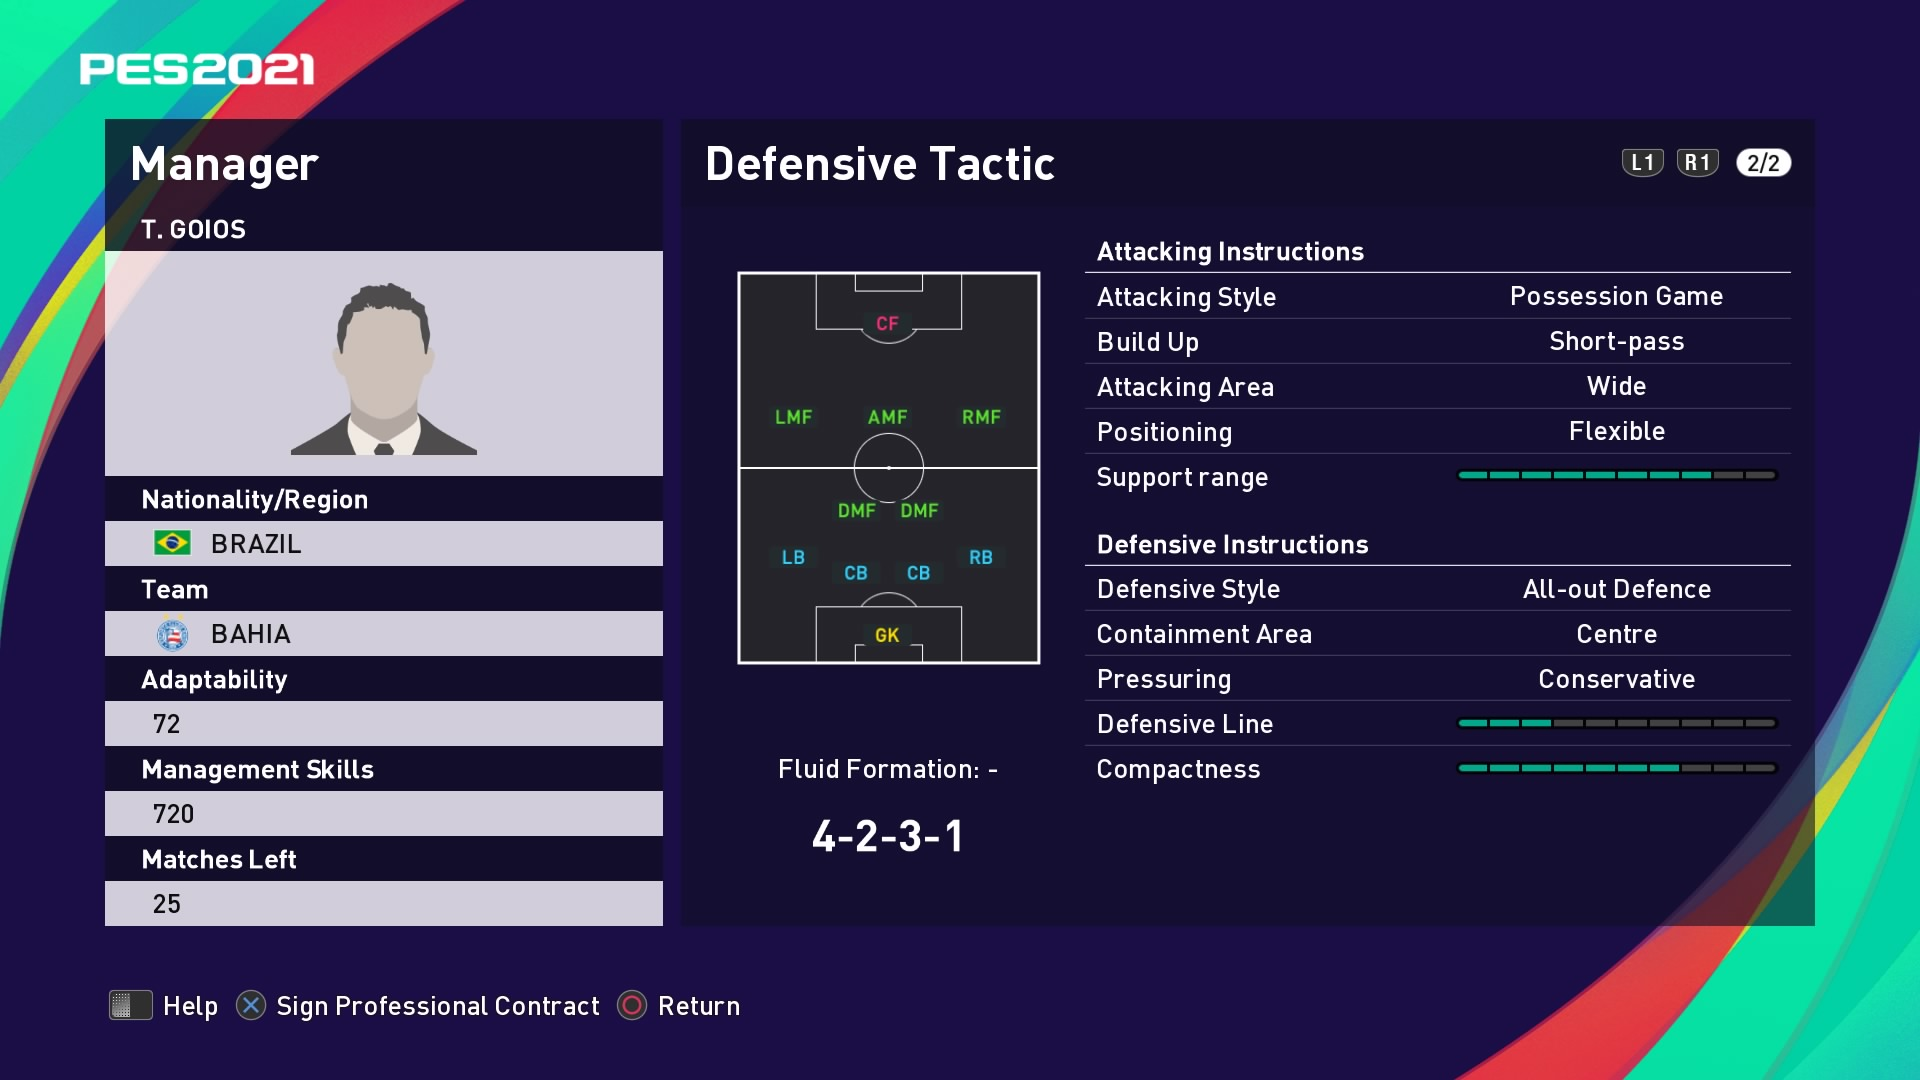 T. Goios (Roger Machado) Defensive Tactic in PES 2021 myClub